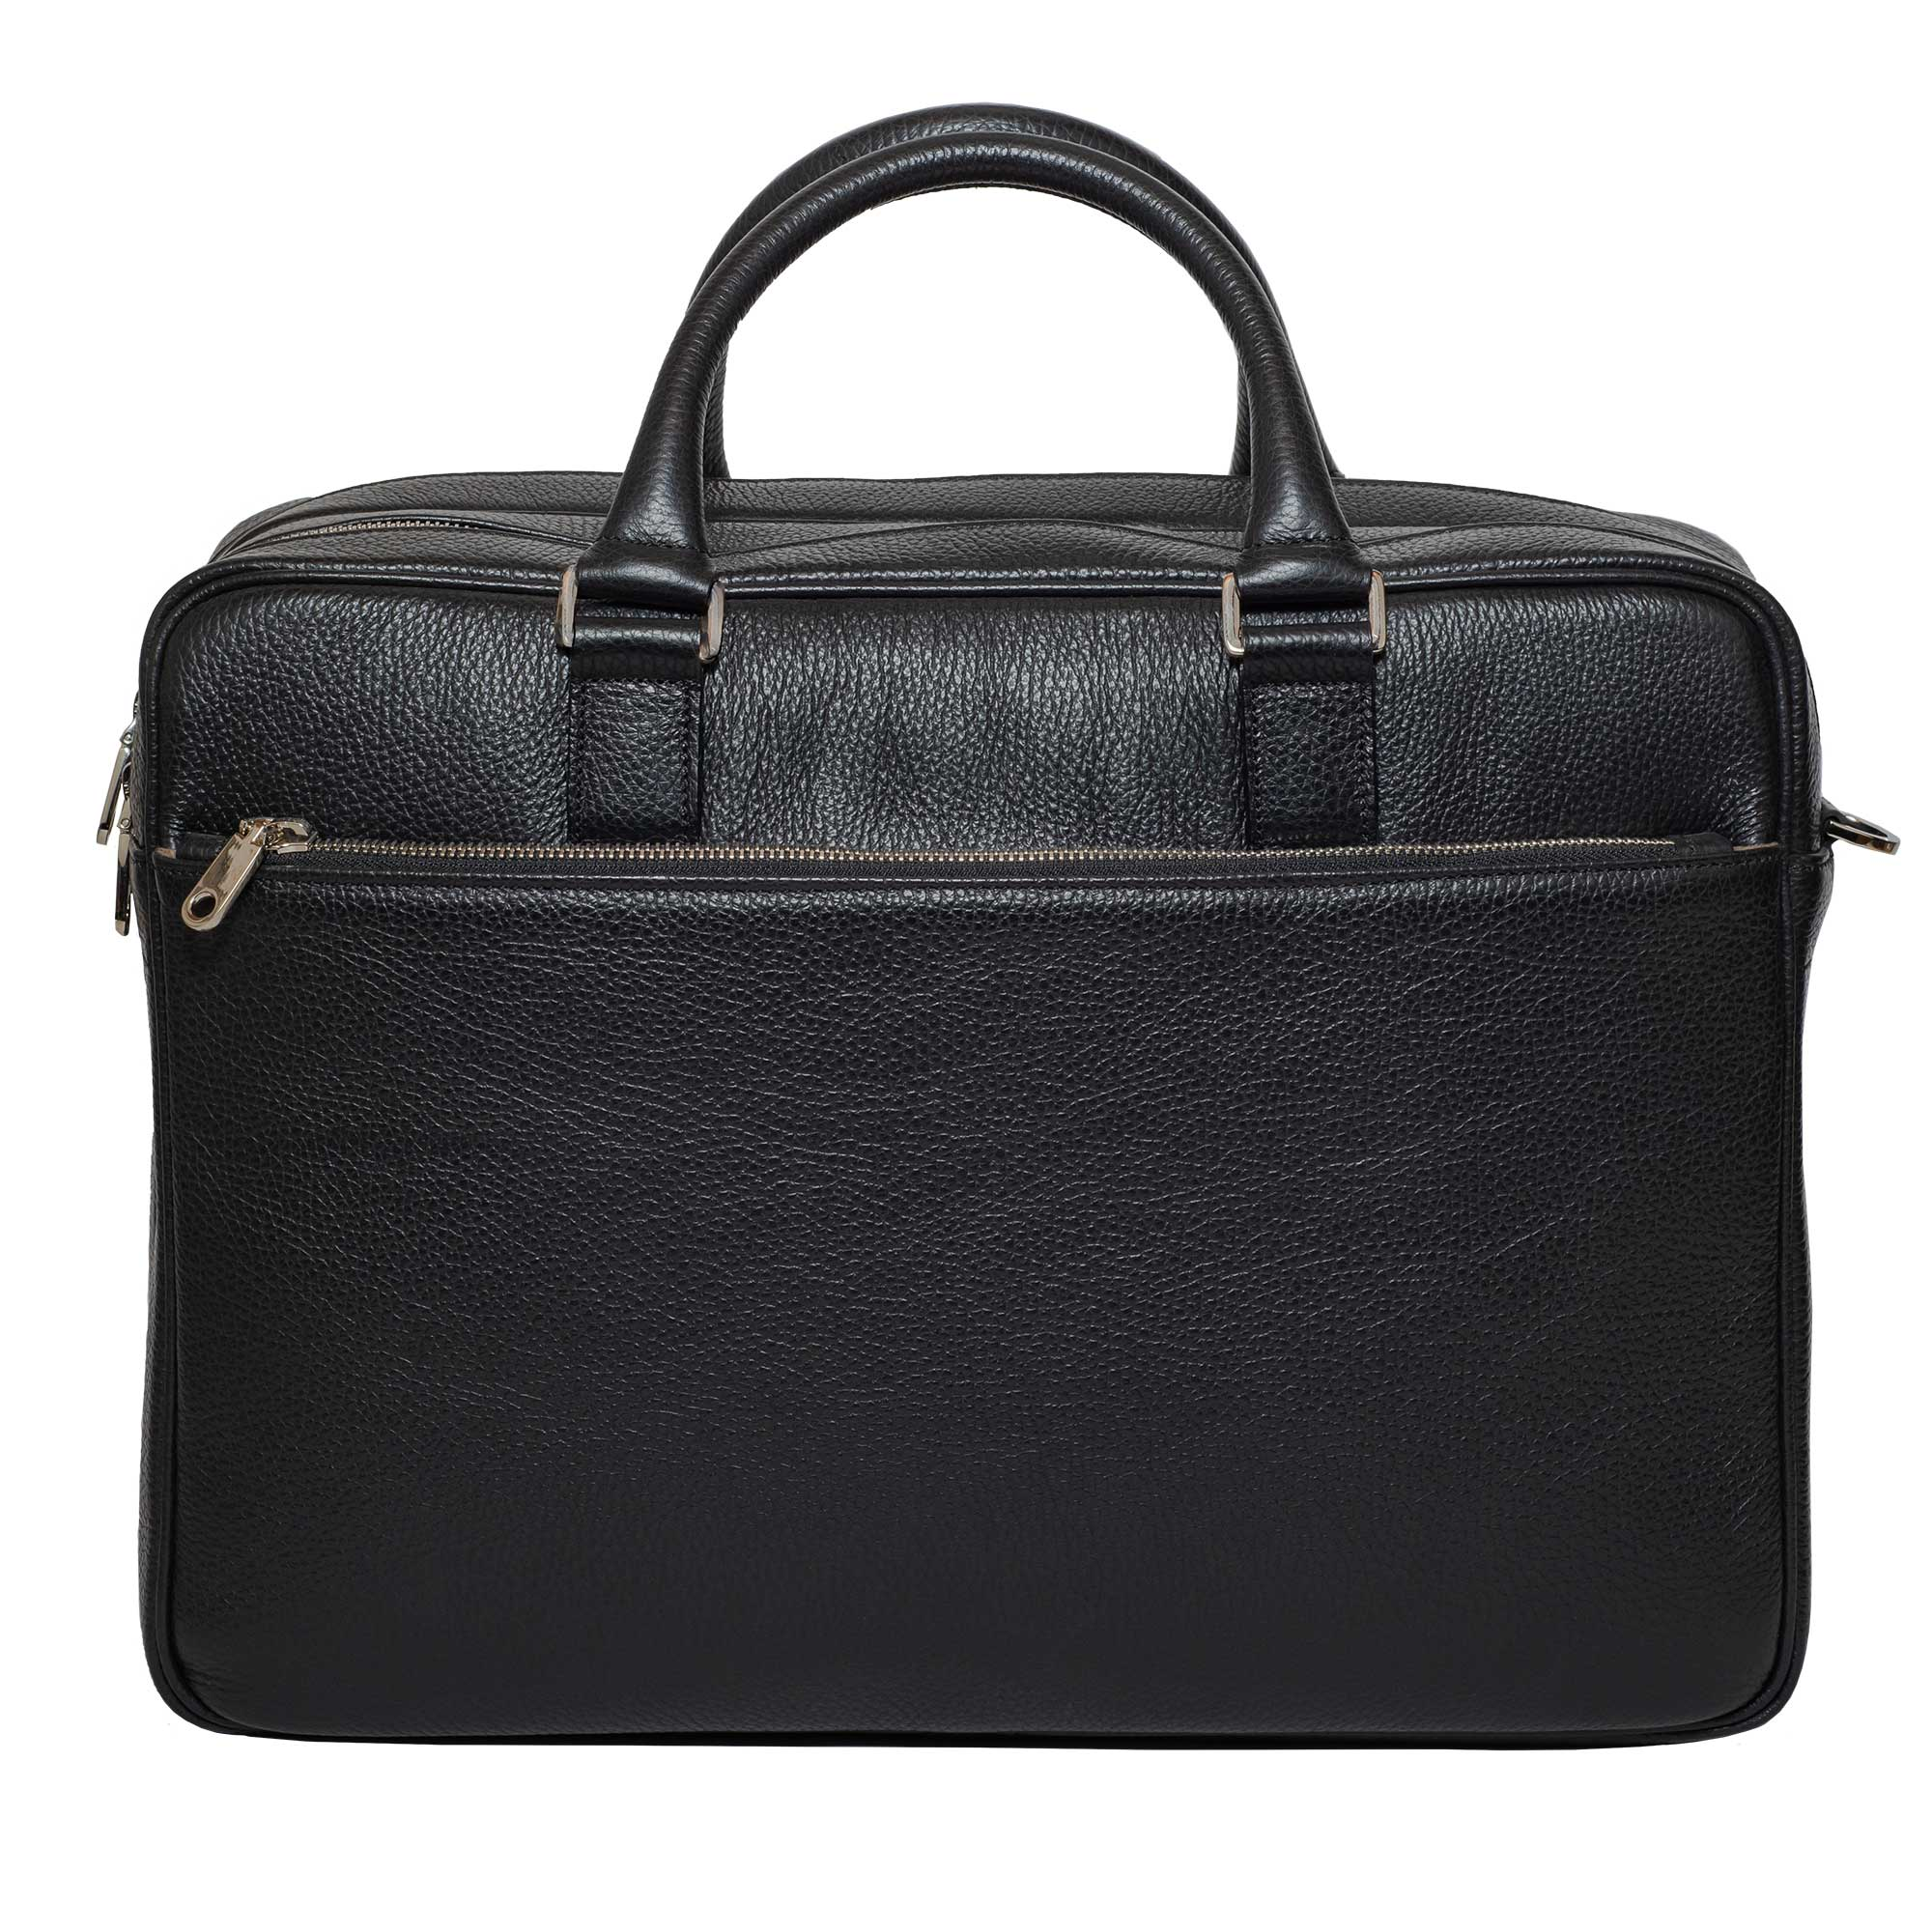 DiLoro Italian Leather Briefcases for Men | Made in Italy - Front View with zippered full length pocket